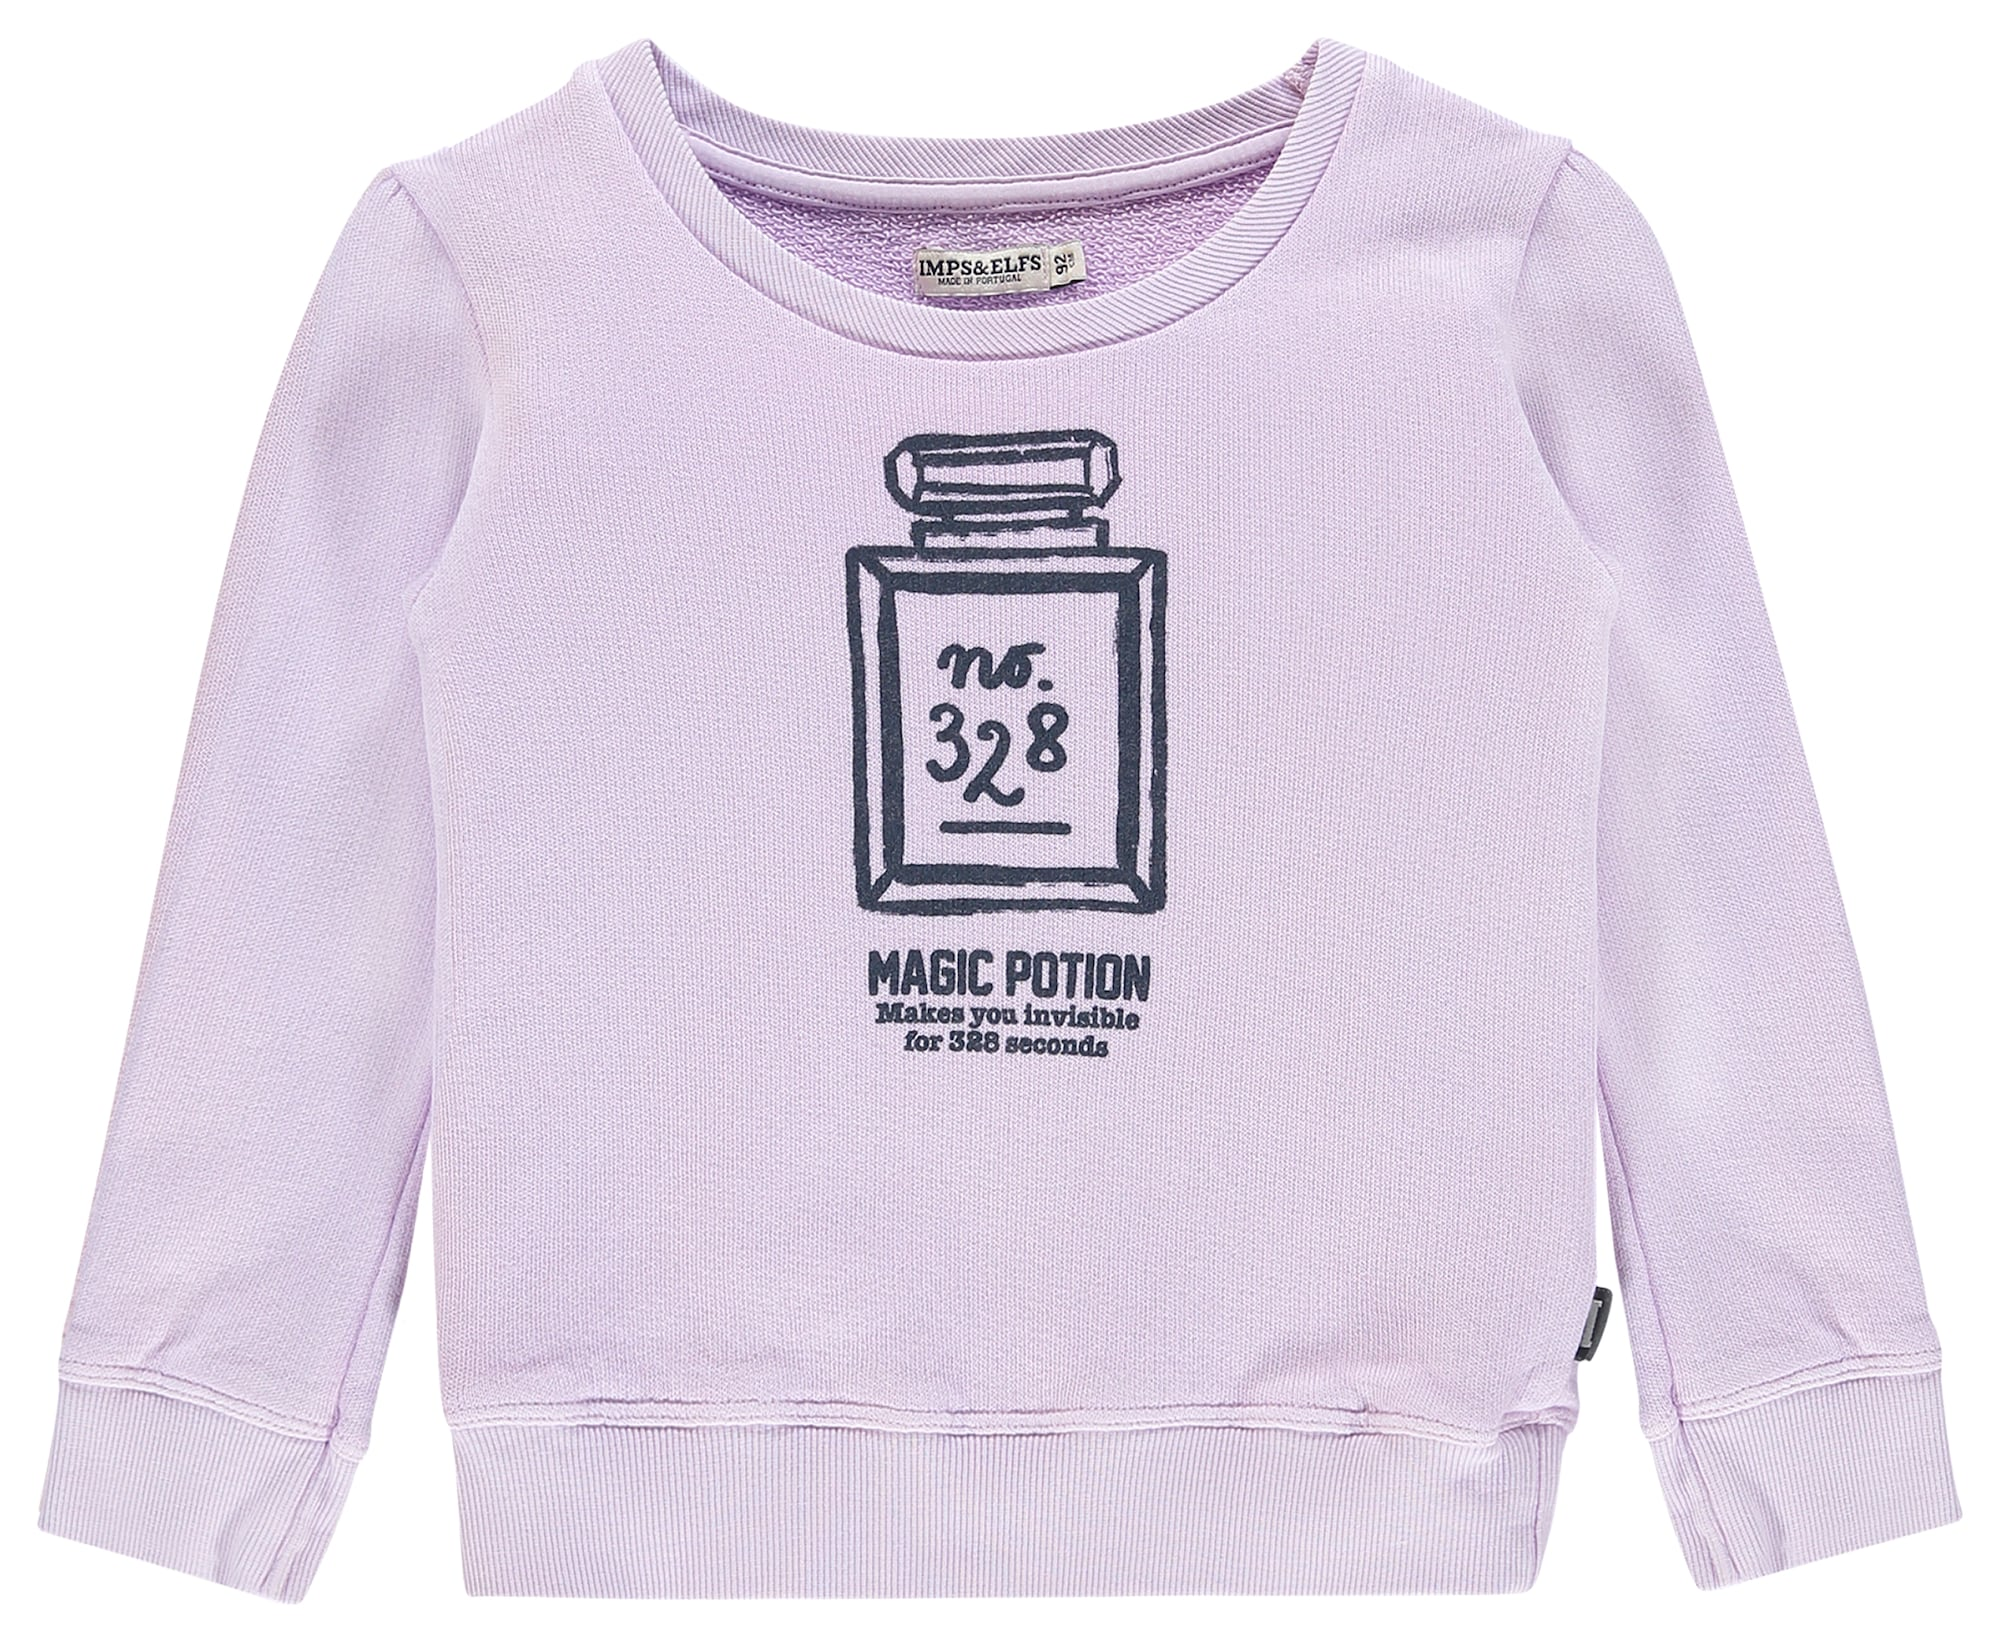 Babyoberteile - Pullover 'Plano' - Onlineshop ABOUT YOU